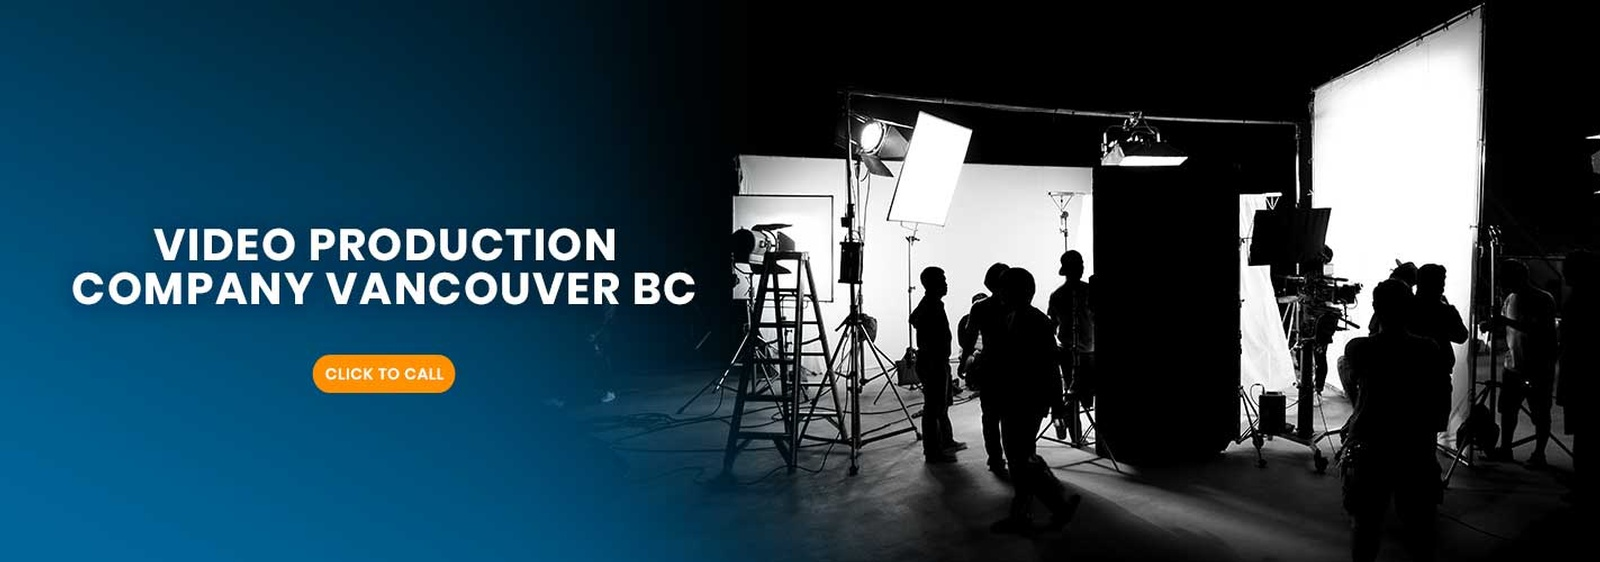 Video Production Company Vancouver BC